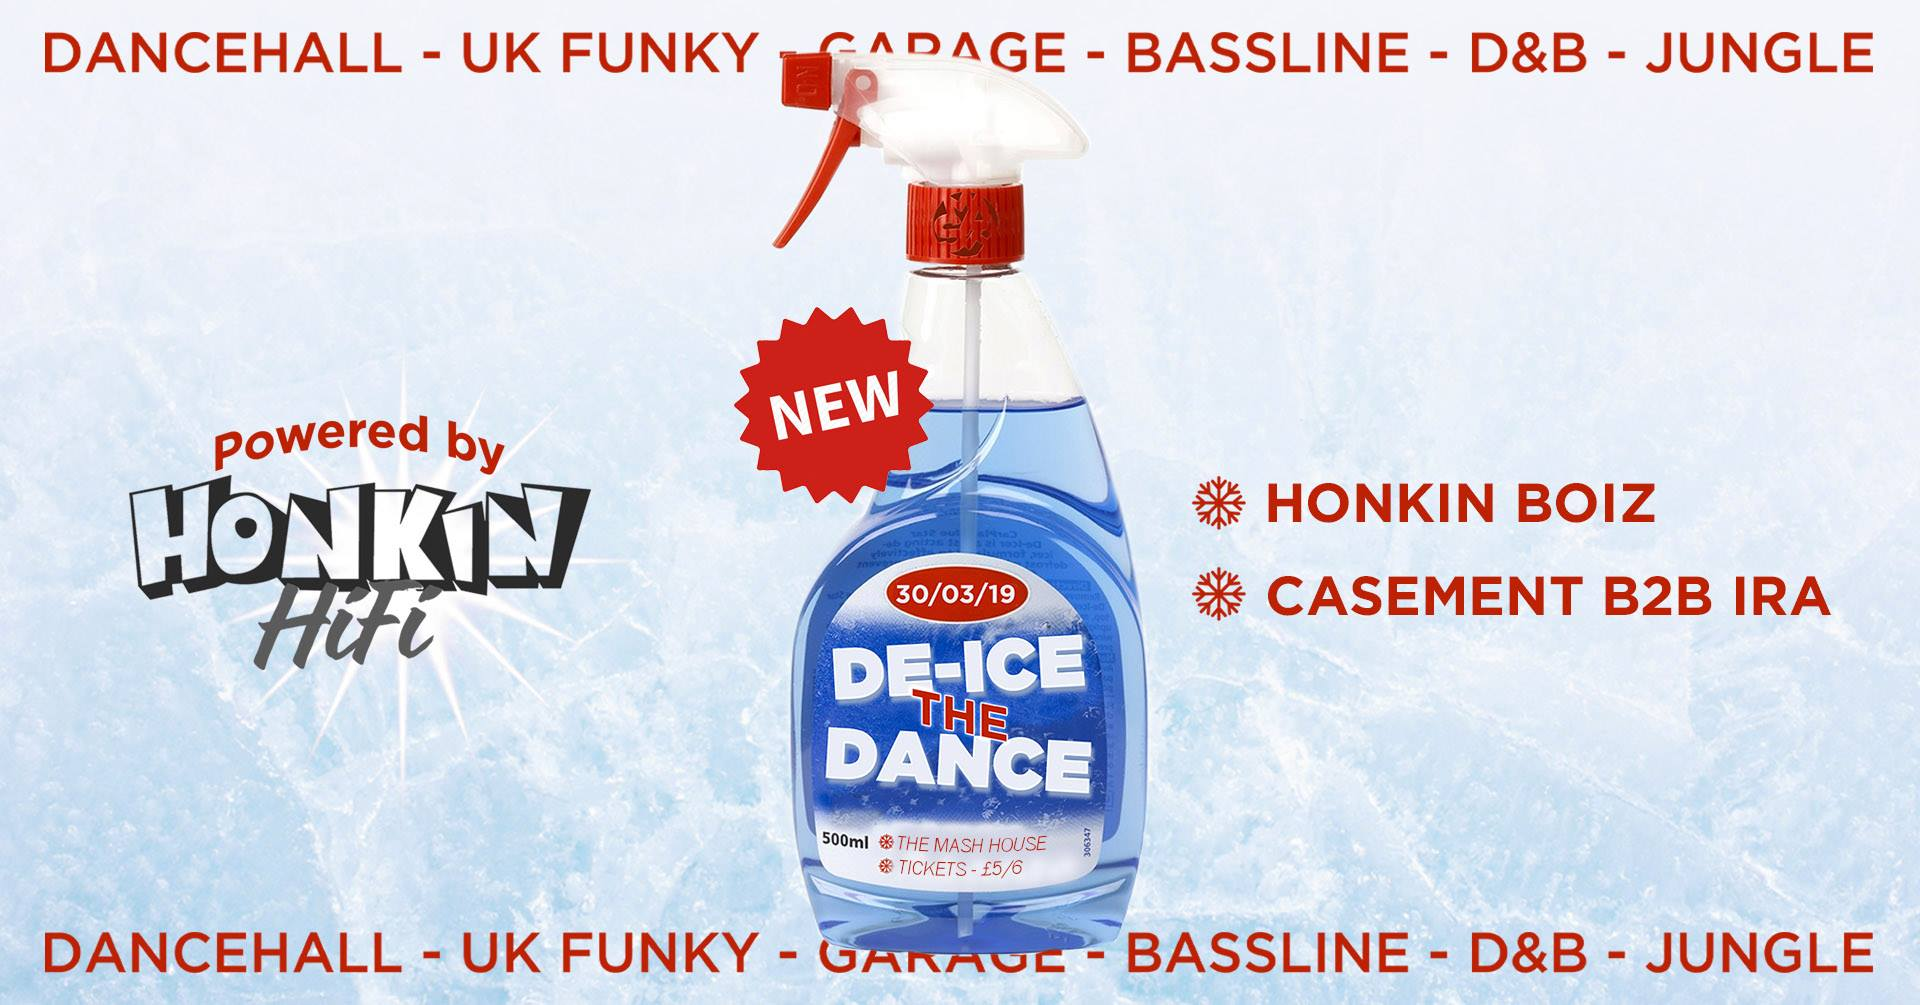 De-Ice The Dance